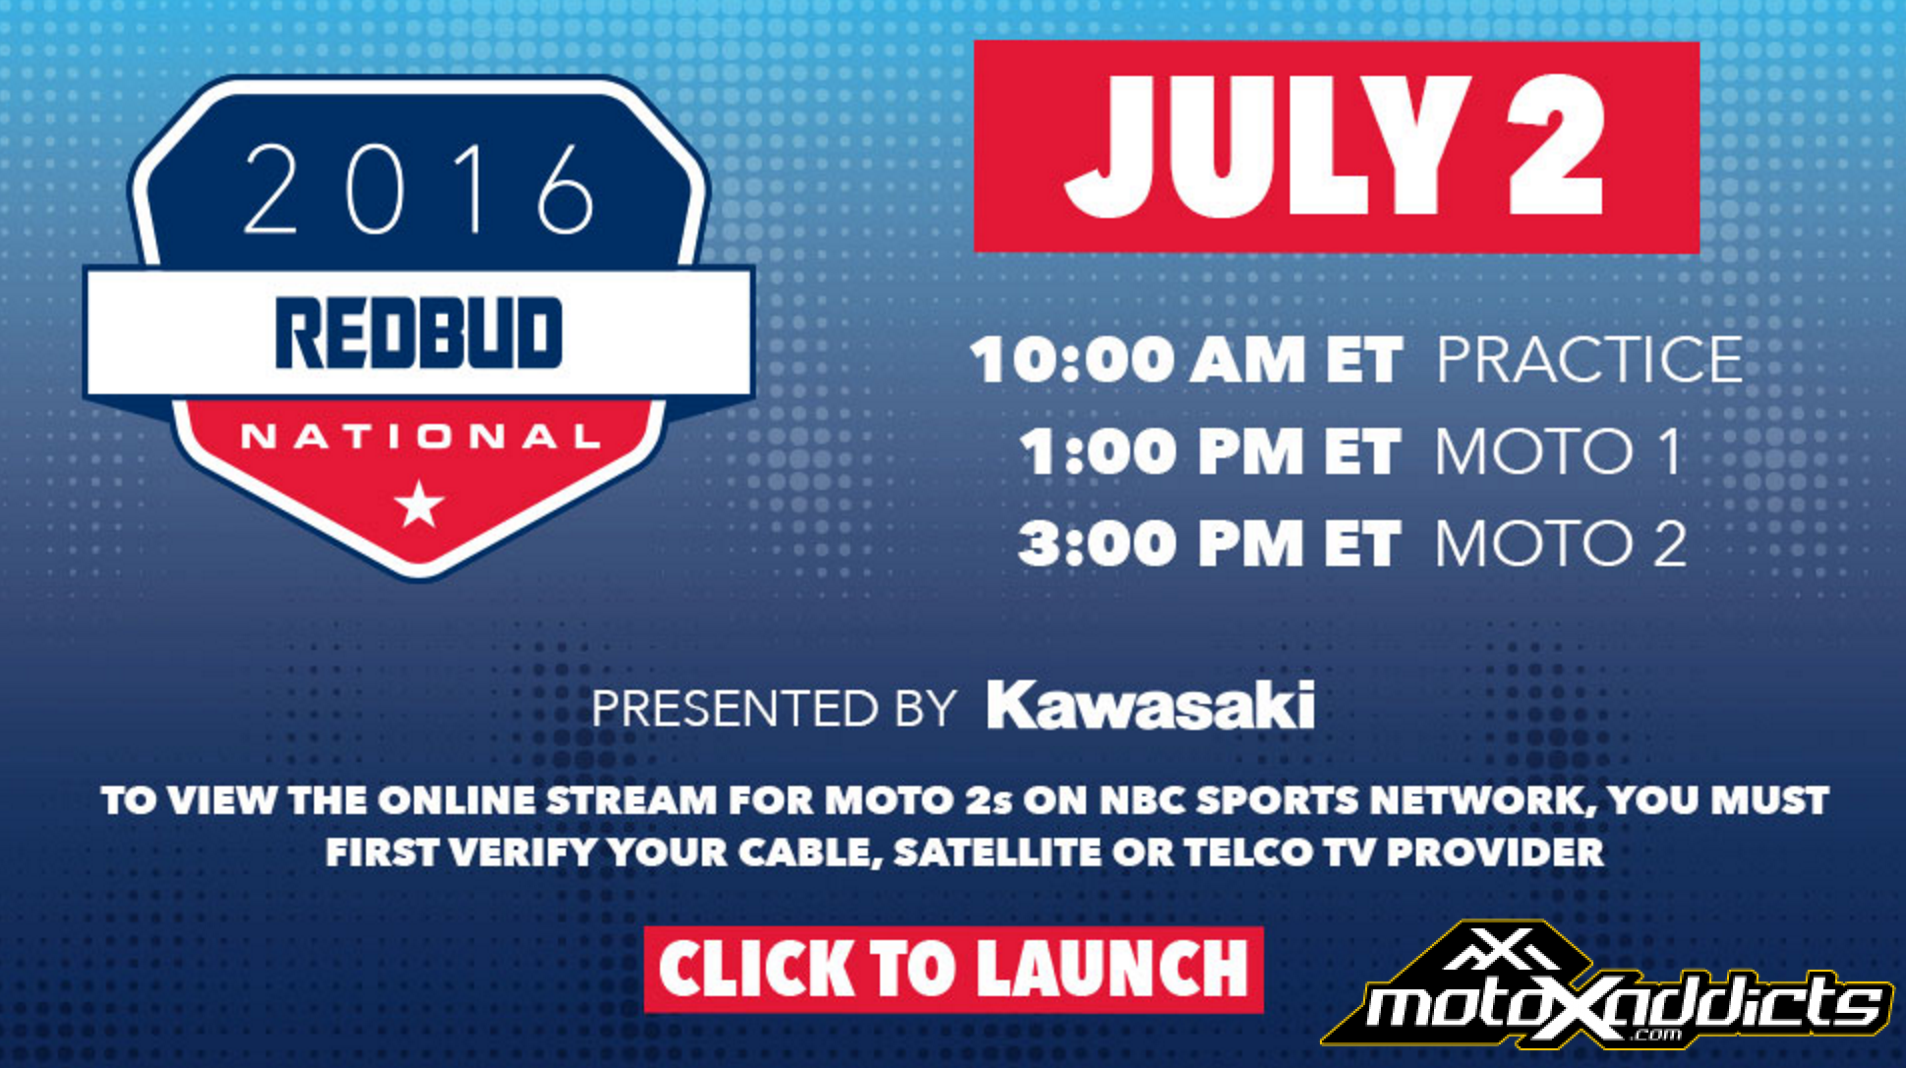 2016 RedBud National TV and Internet Broadcast Schedule